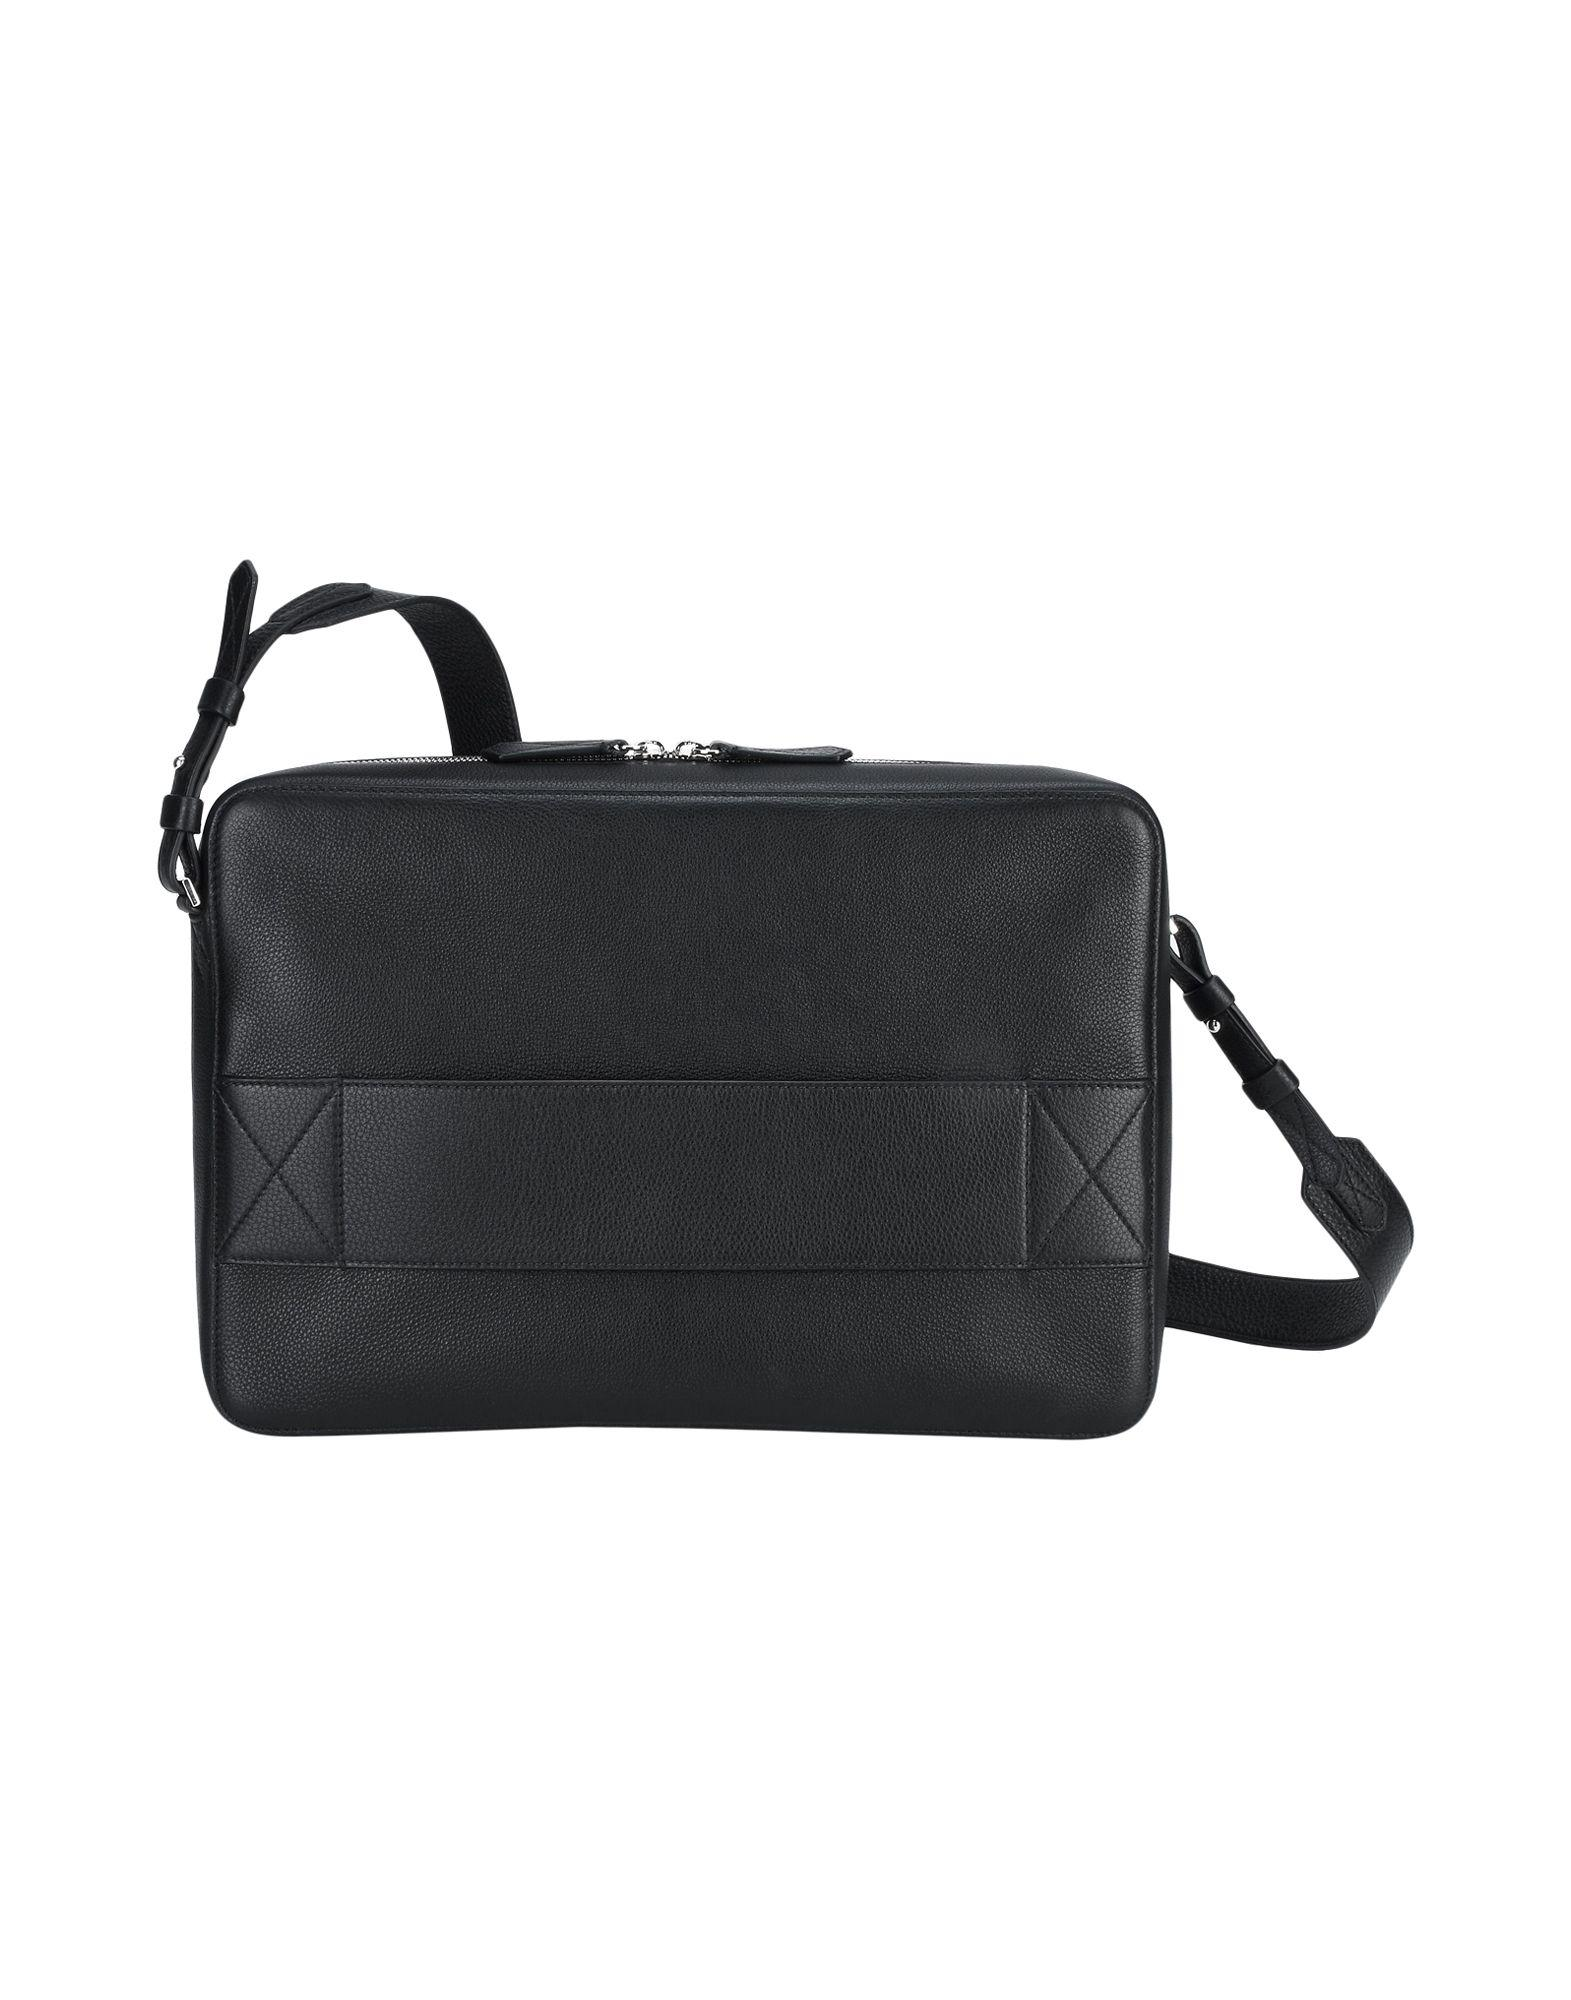 9658e79dad Lyst - Lancel Work Bags in Black for Men